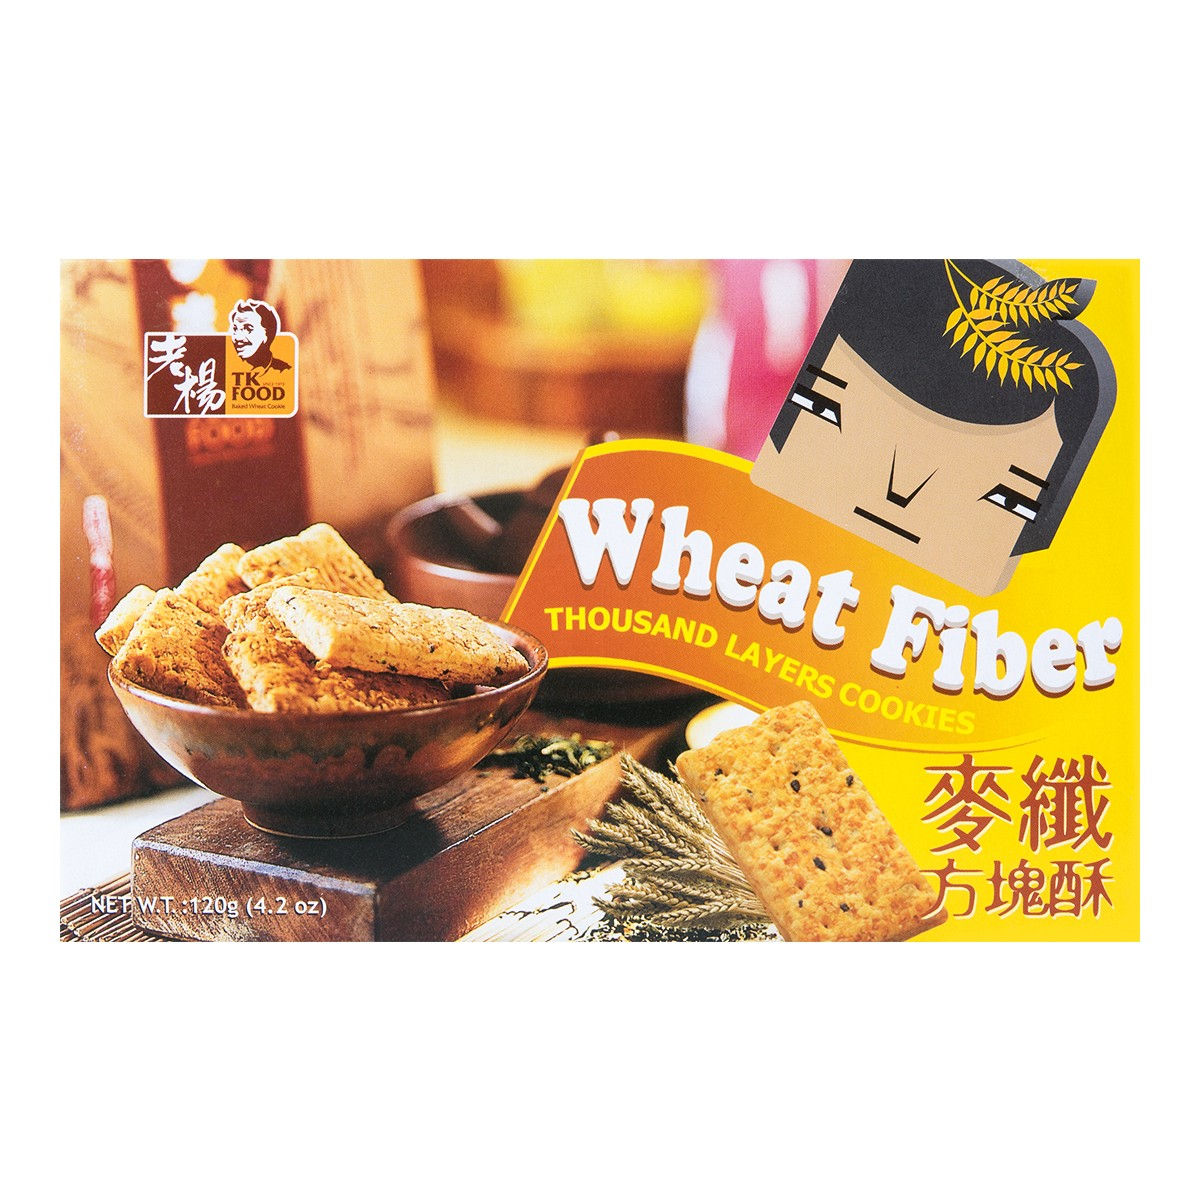 TK FOOD Whear Fiber Thousand Layers Cookies 120g